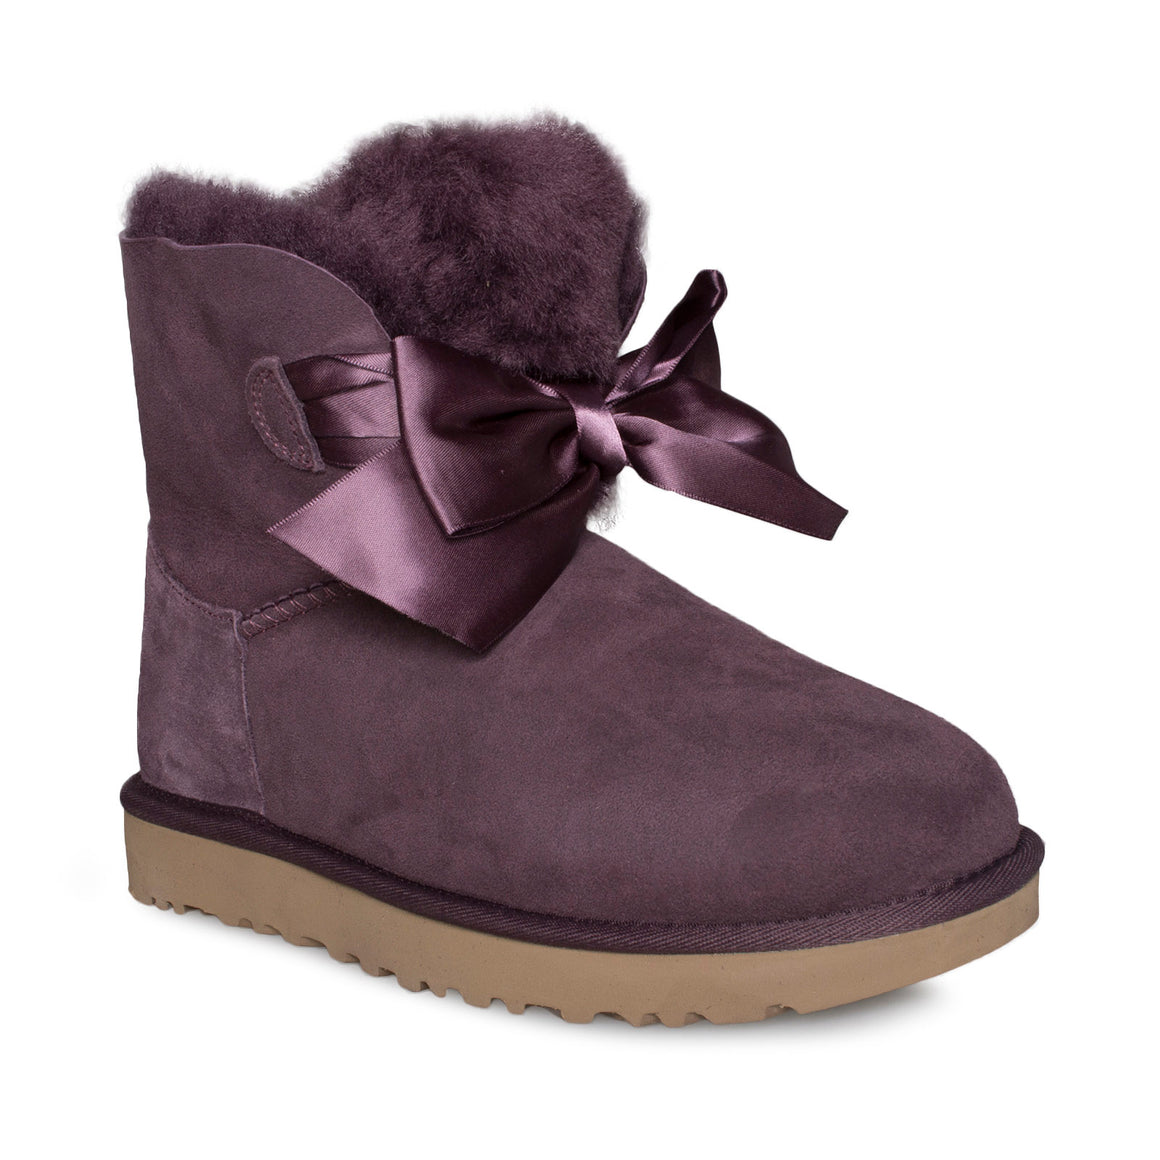 UGG Gita Bow Port Boots - Women's